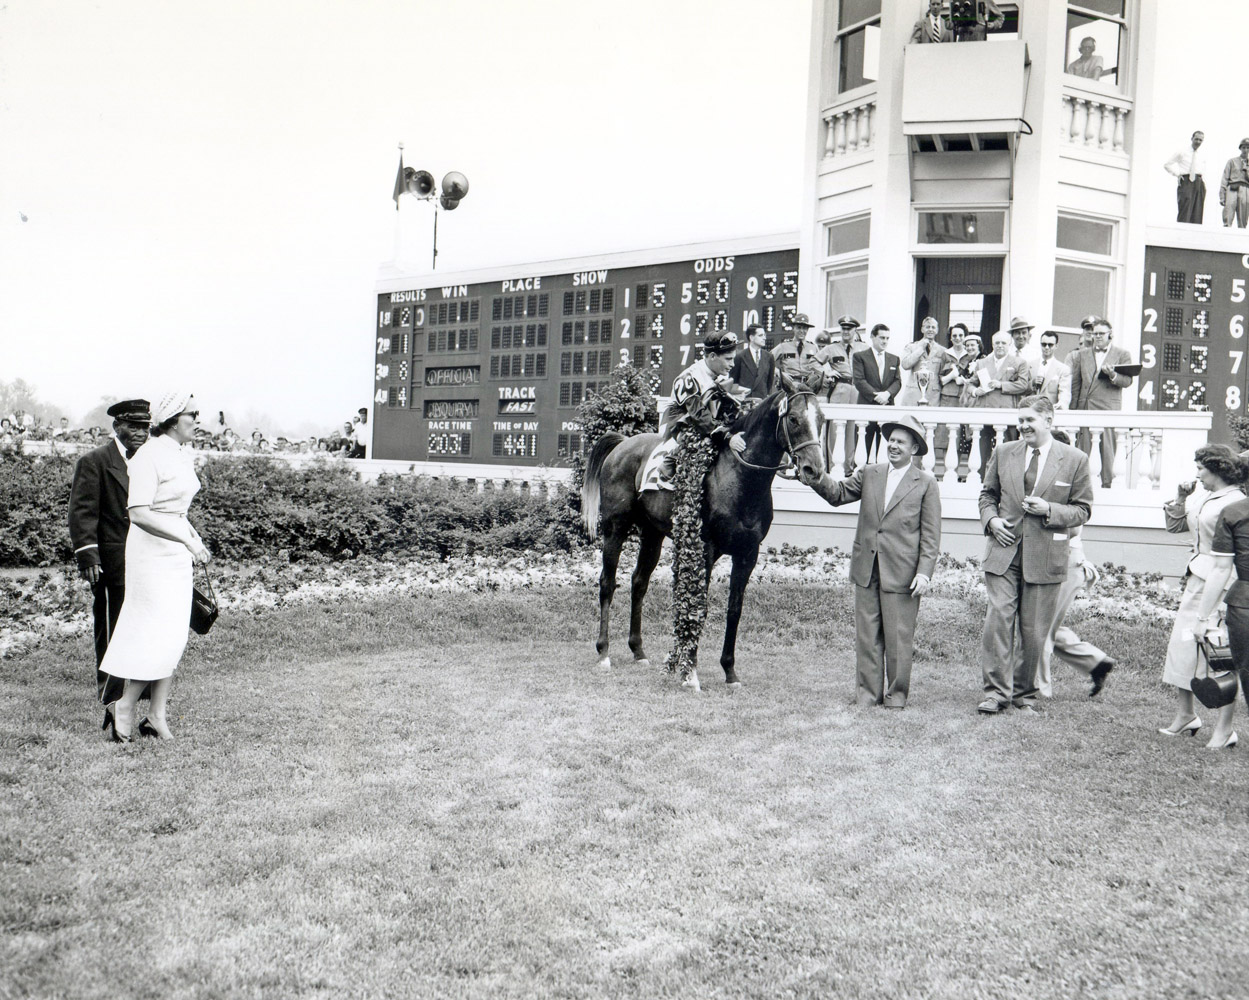 The winning connections of Determine, including trainer William Molter, celebrate in the winner's circle after winning the 1954 Kentucky Derby (Churchill Downs Inc./Kinetic Corp. /Museum Collection)